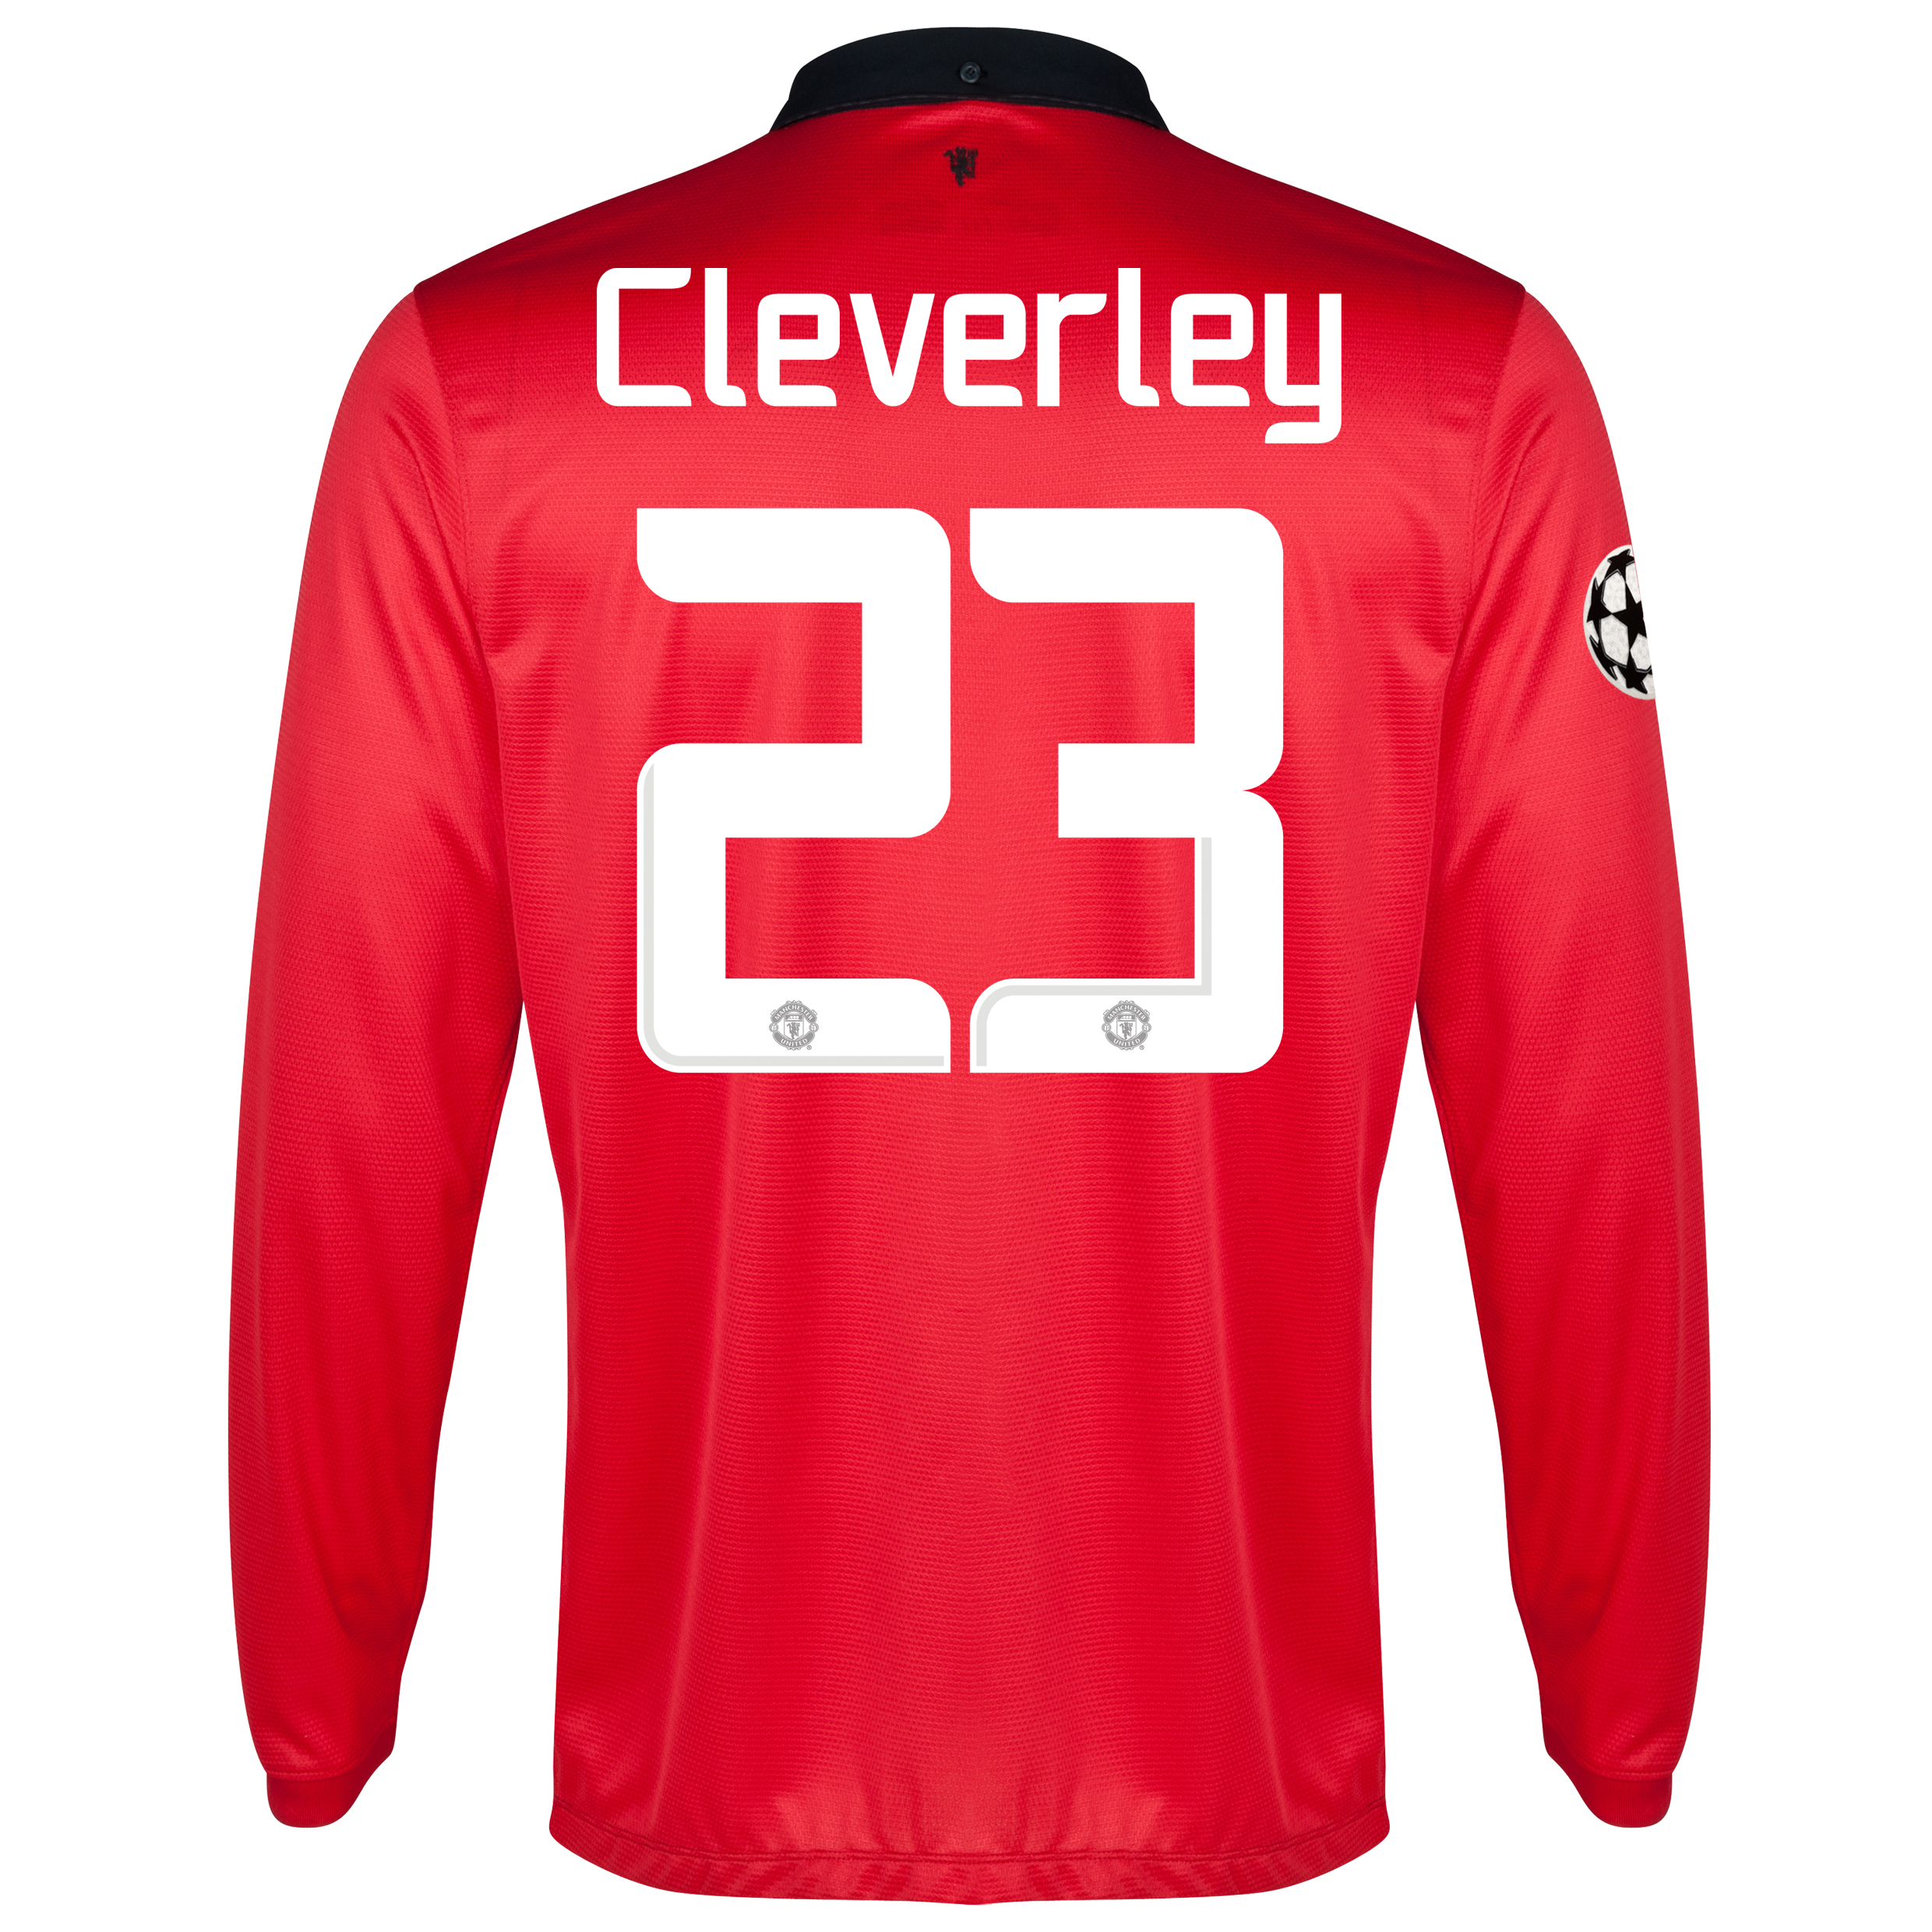 Manchester United UEFA Champions League Home Shirt 2013/14 - Long Sleeved with Cleverley 23 printing